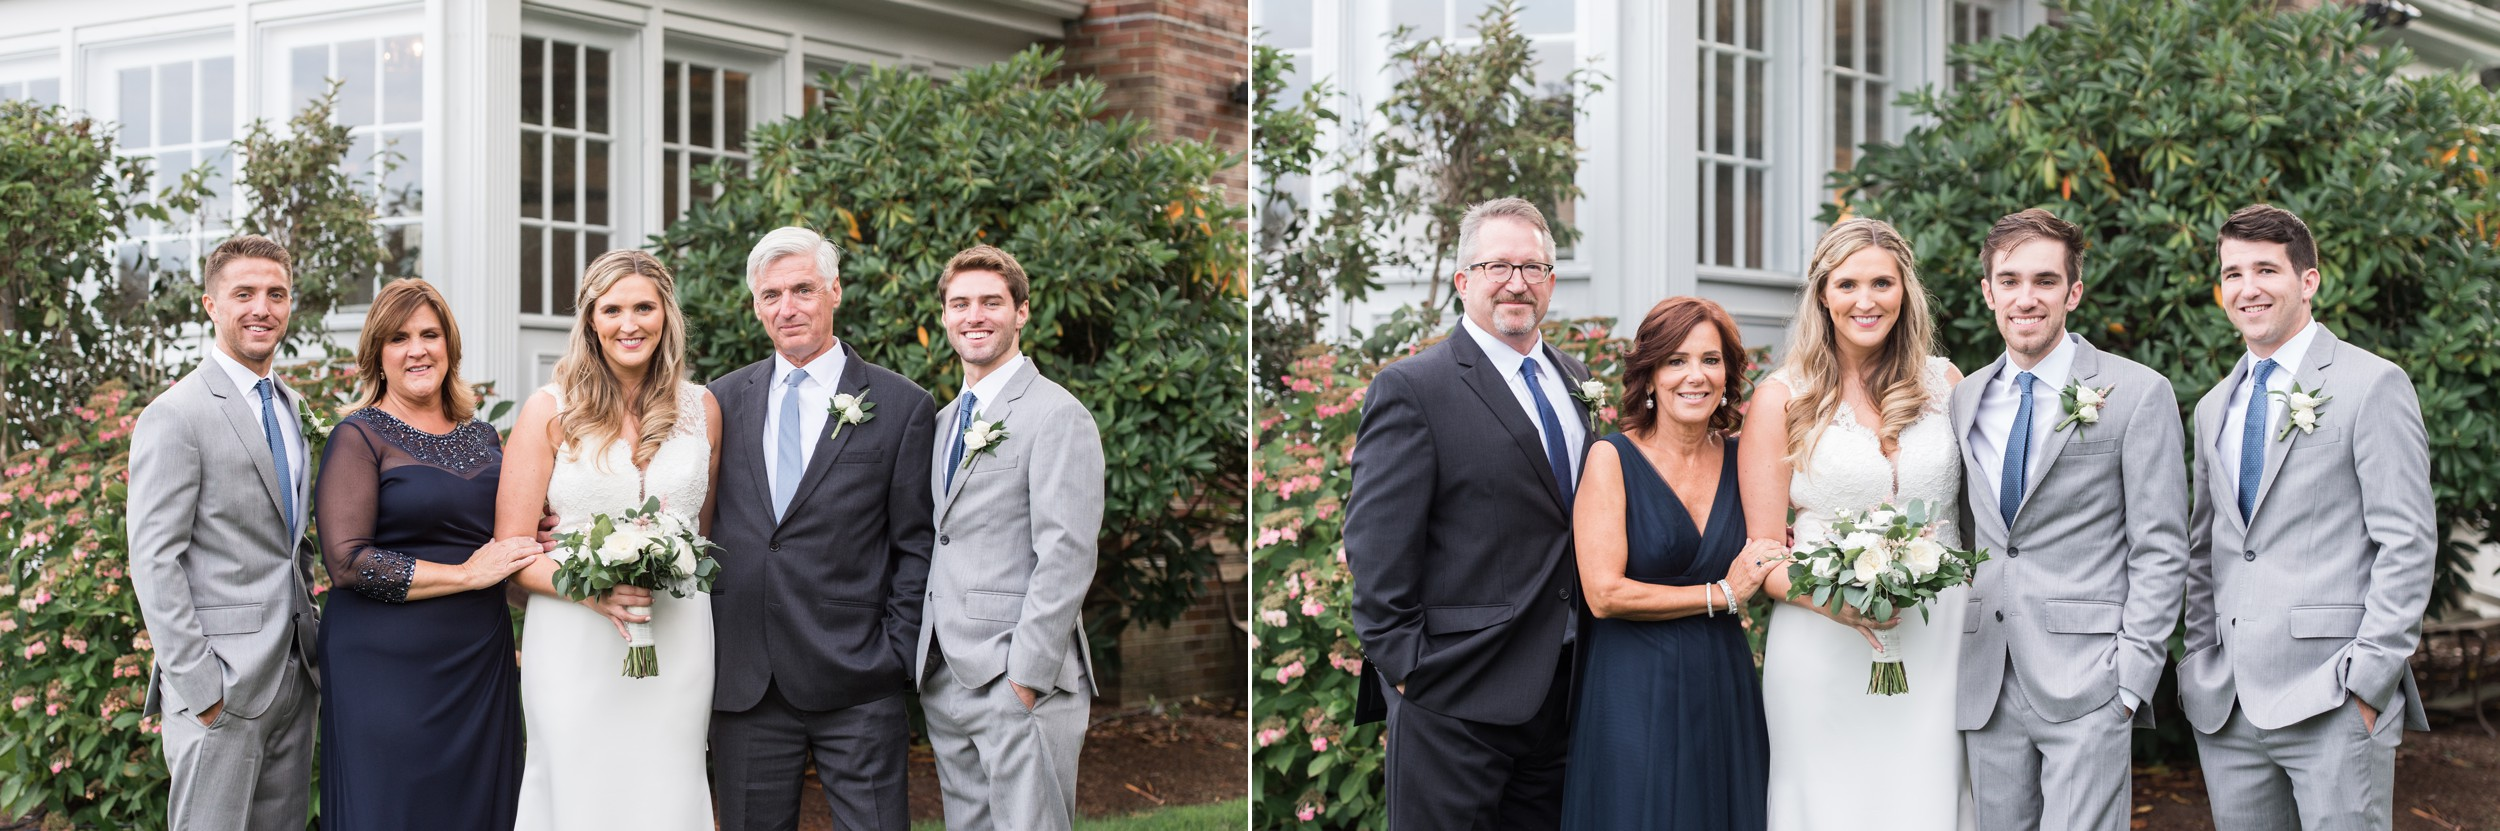 wedding planning family portraits made easy The Dennis Inn Wedding Immediate Family Portraits of parents and siblings.jpg